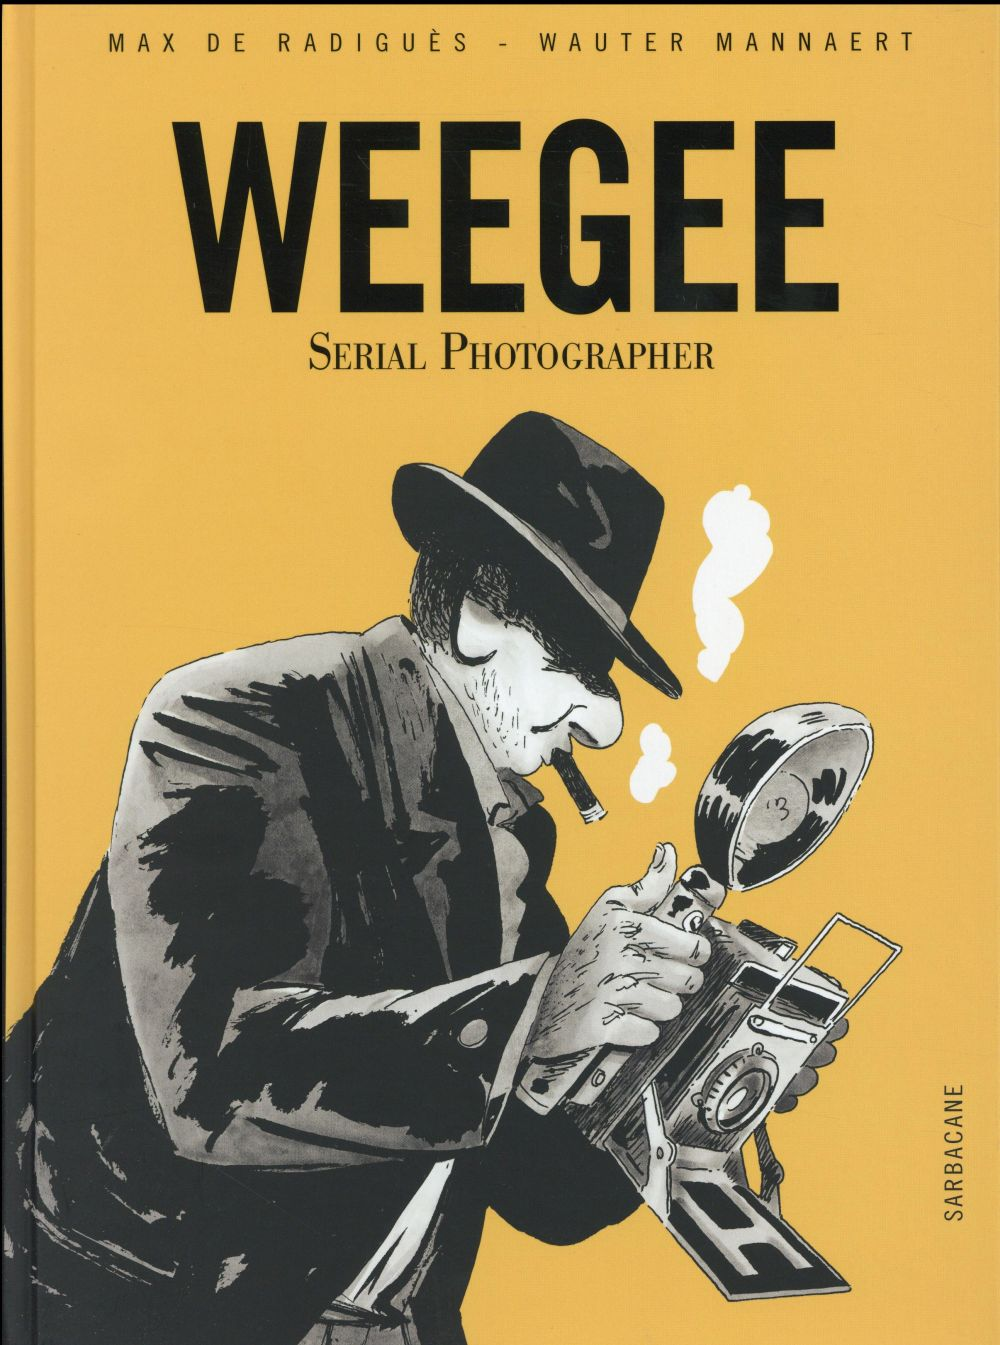 WEEGEE - SERIAL PHOTOGRAPHER